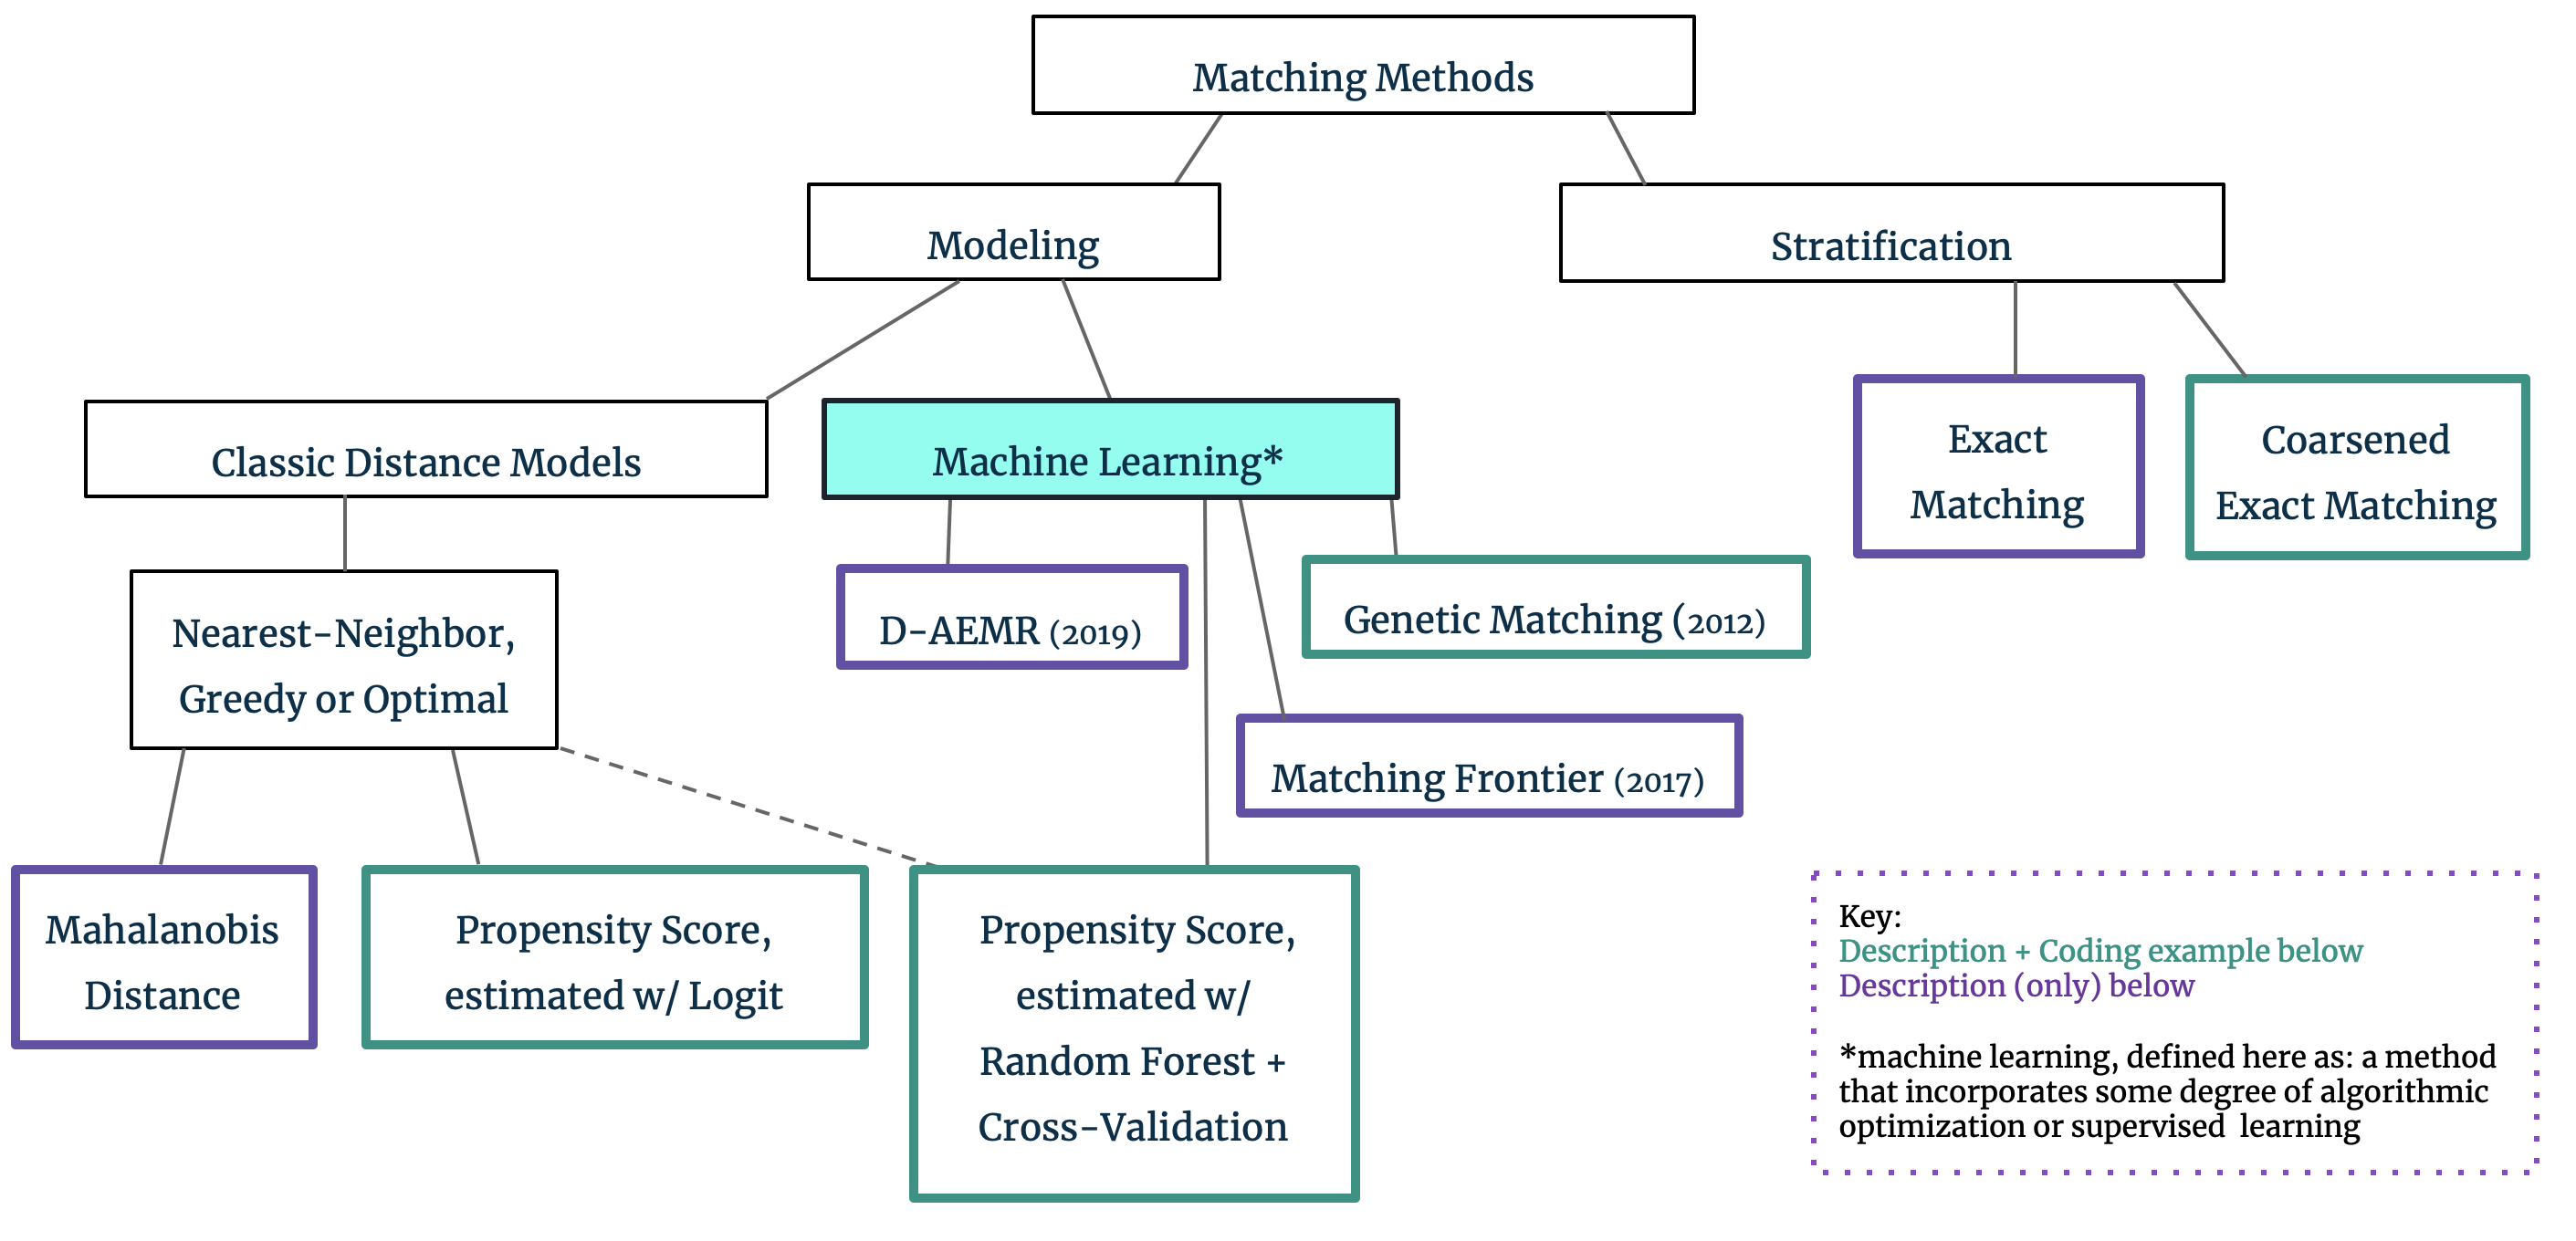 Matching Methods for Causal Inference: A Machine Learning Update